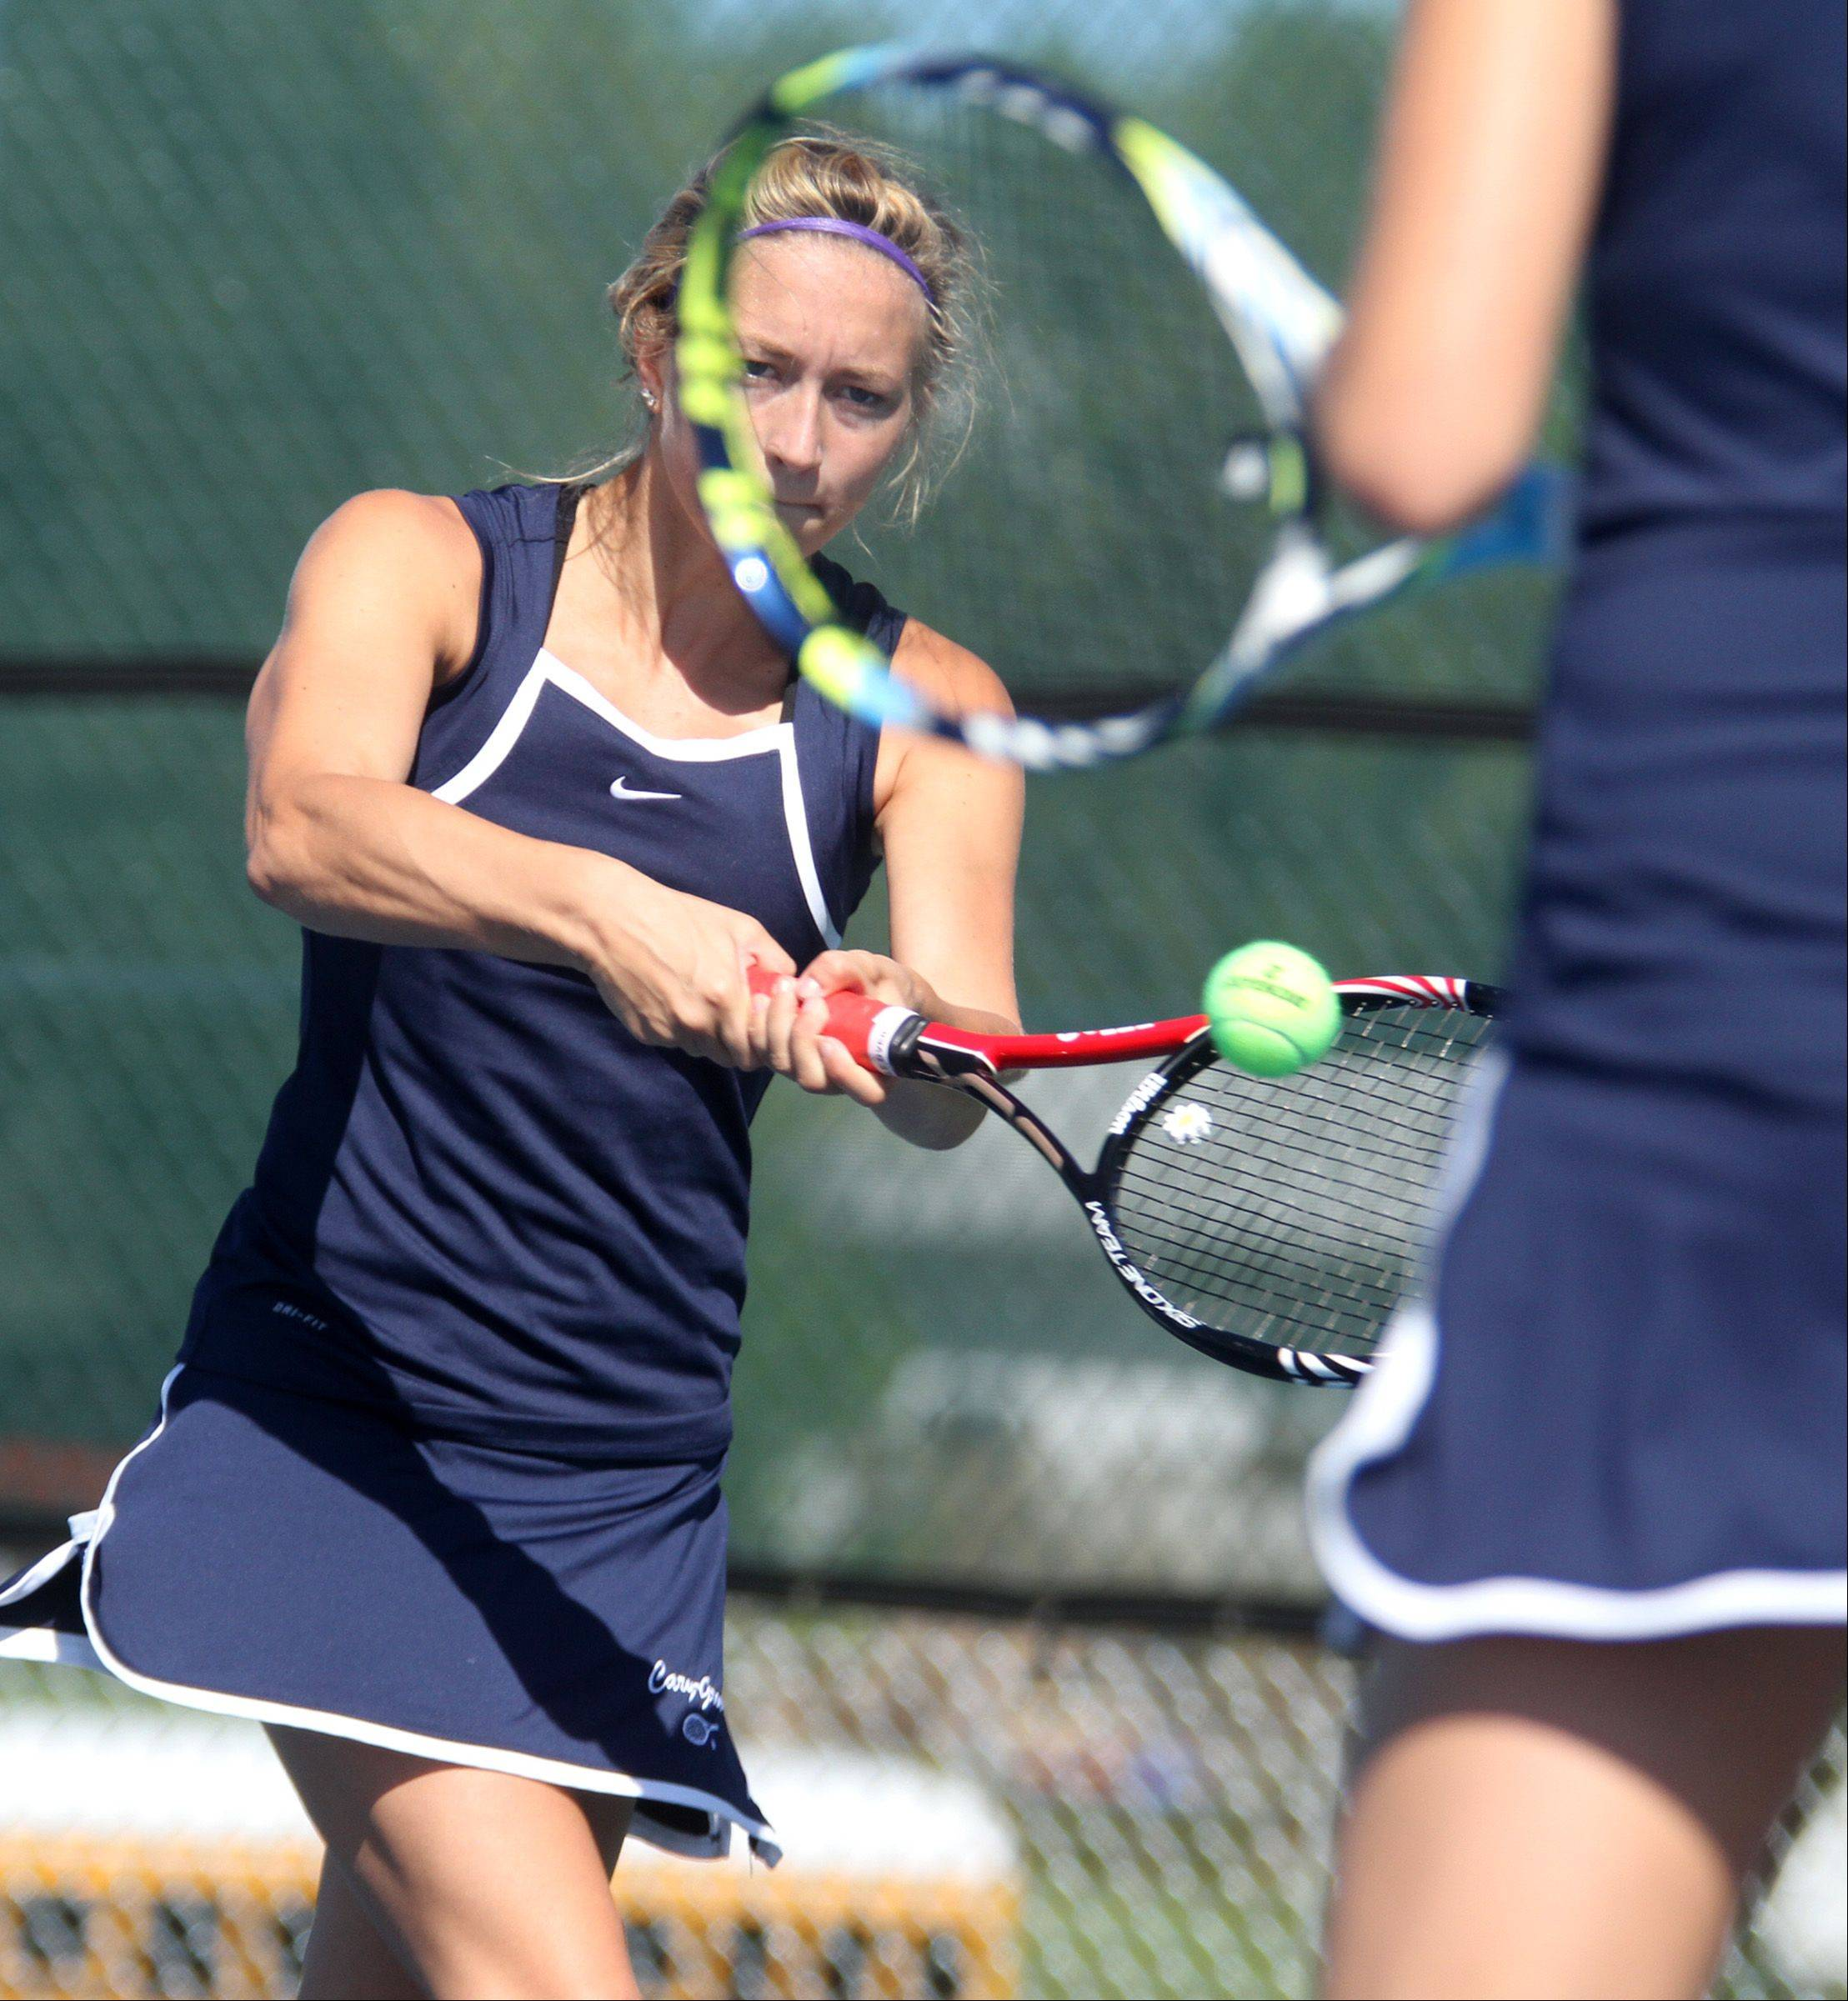 Cary-Grove High School's Alyssa Derer charges the ball framed by teammate Macy Koepke's racket in doubles against Hersey's Meredith Ward and Megan Salt at Buffalo Grove High School girls tennis invitational on Saturday, September 8.